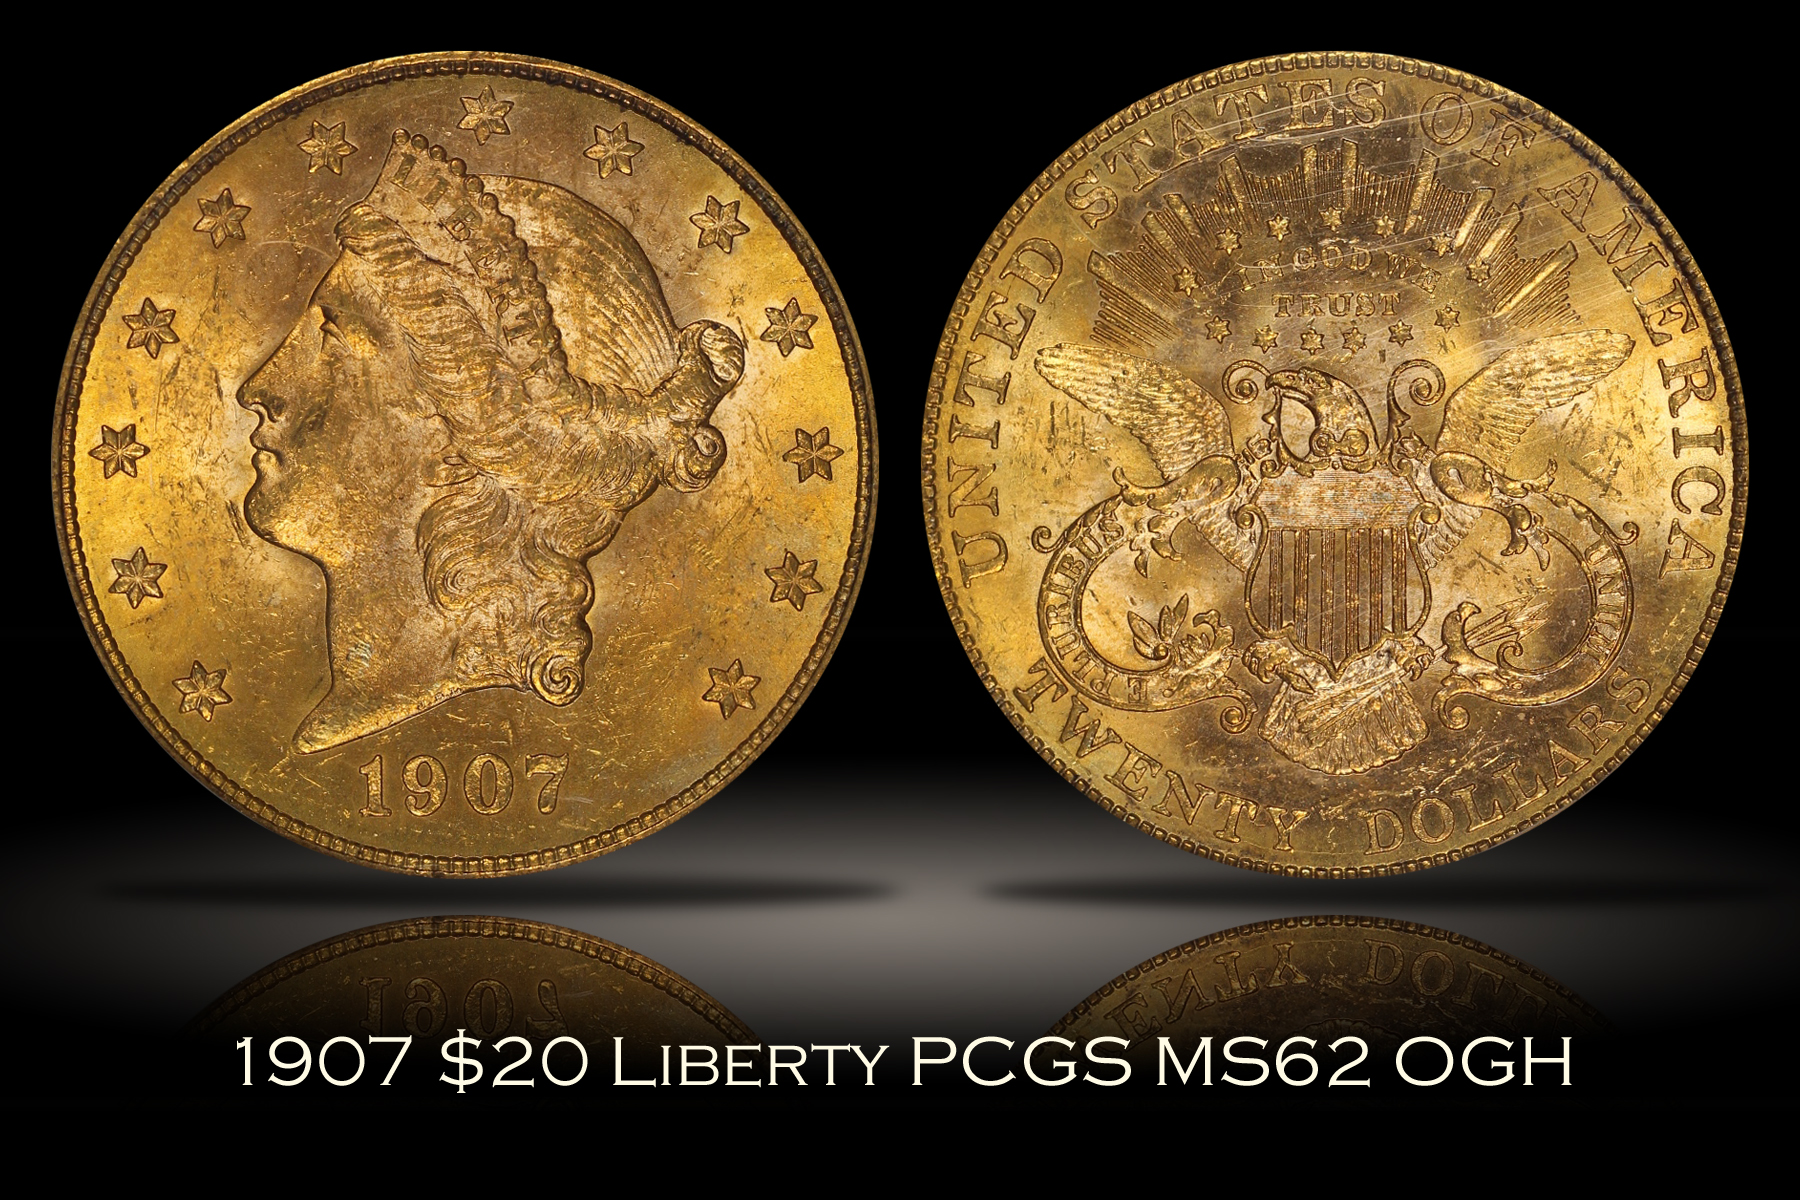 1907 $20 Liberty Gold PCGS MS62 OGH